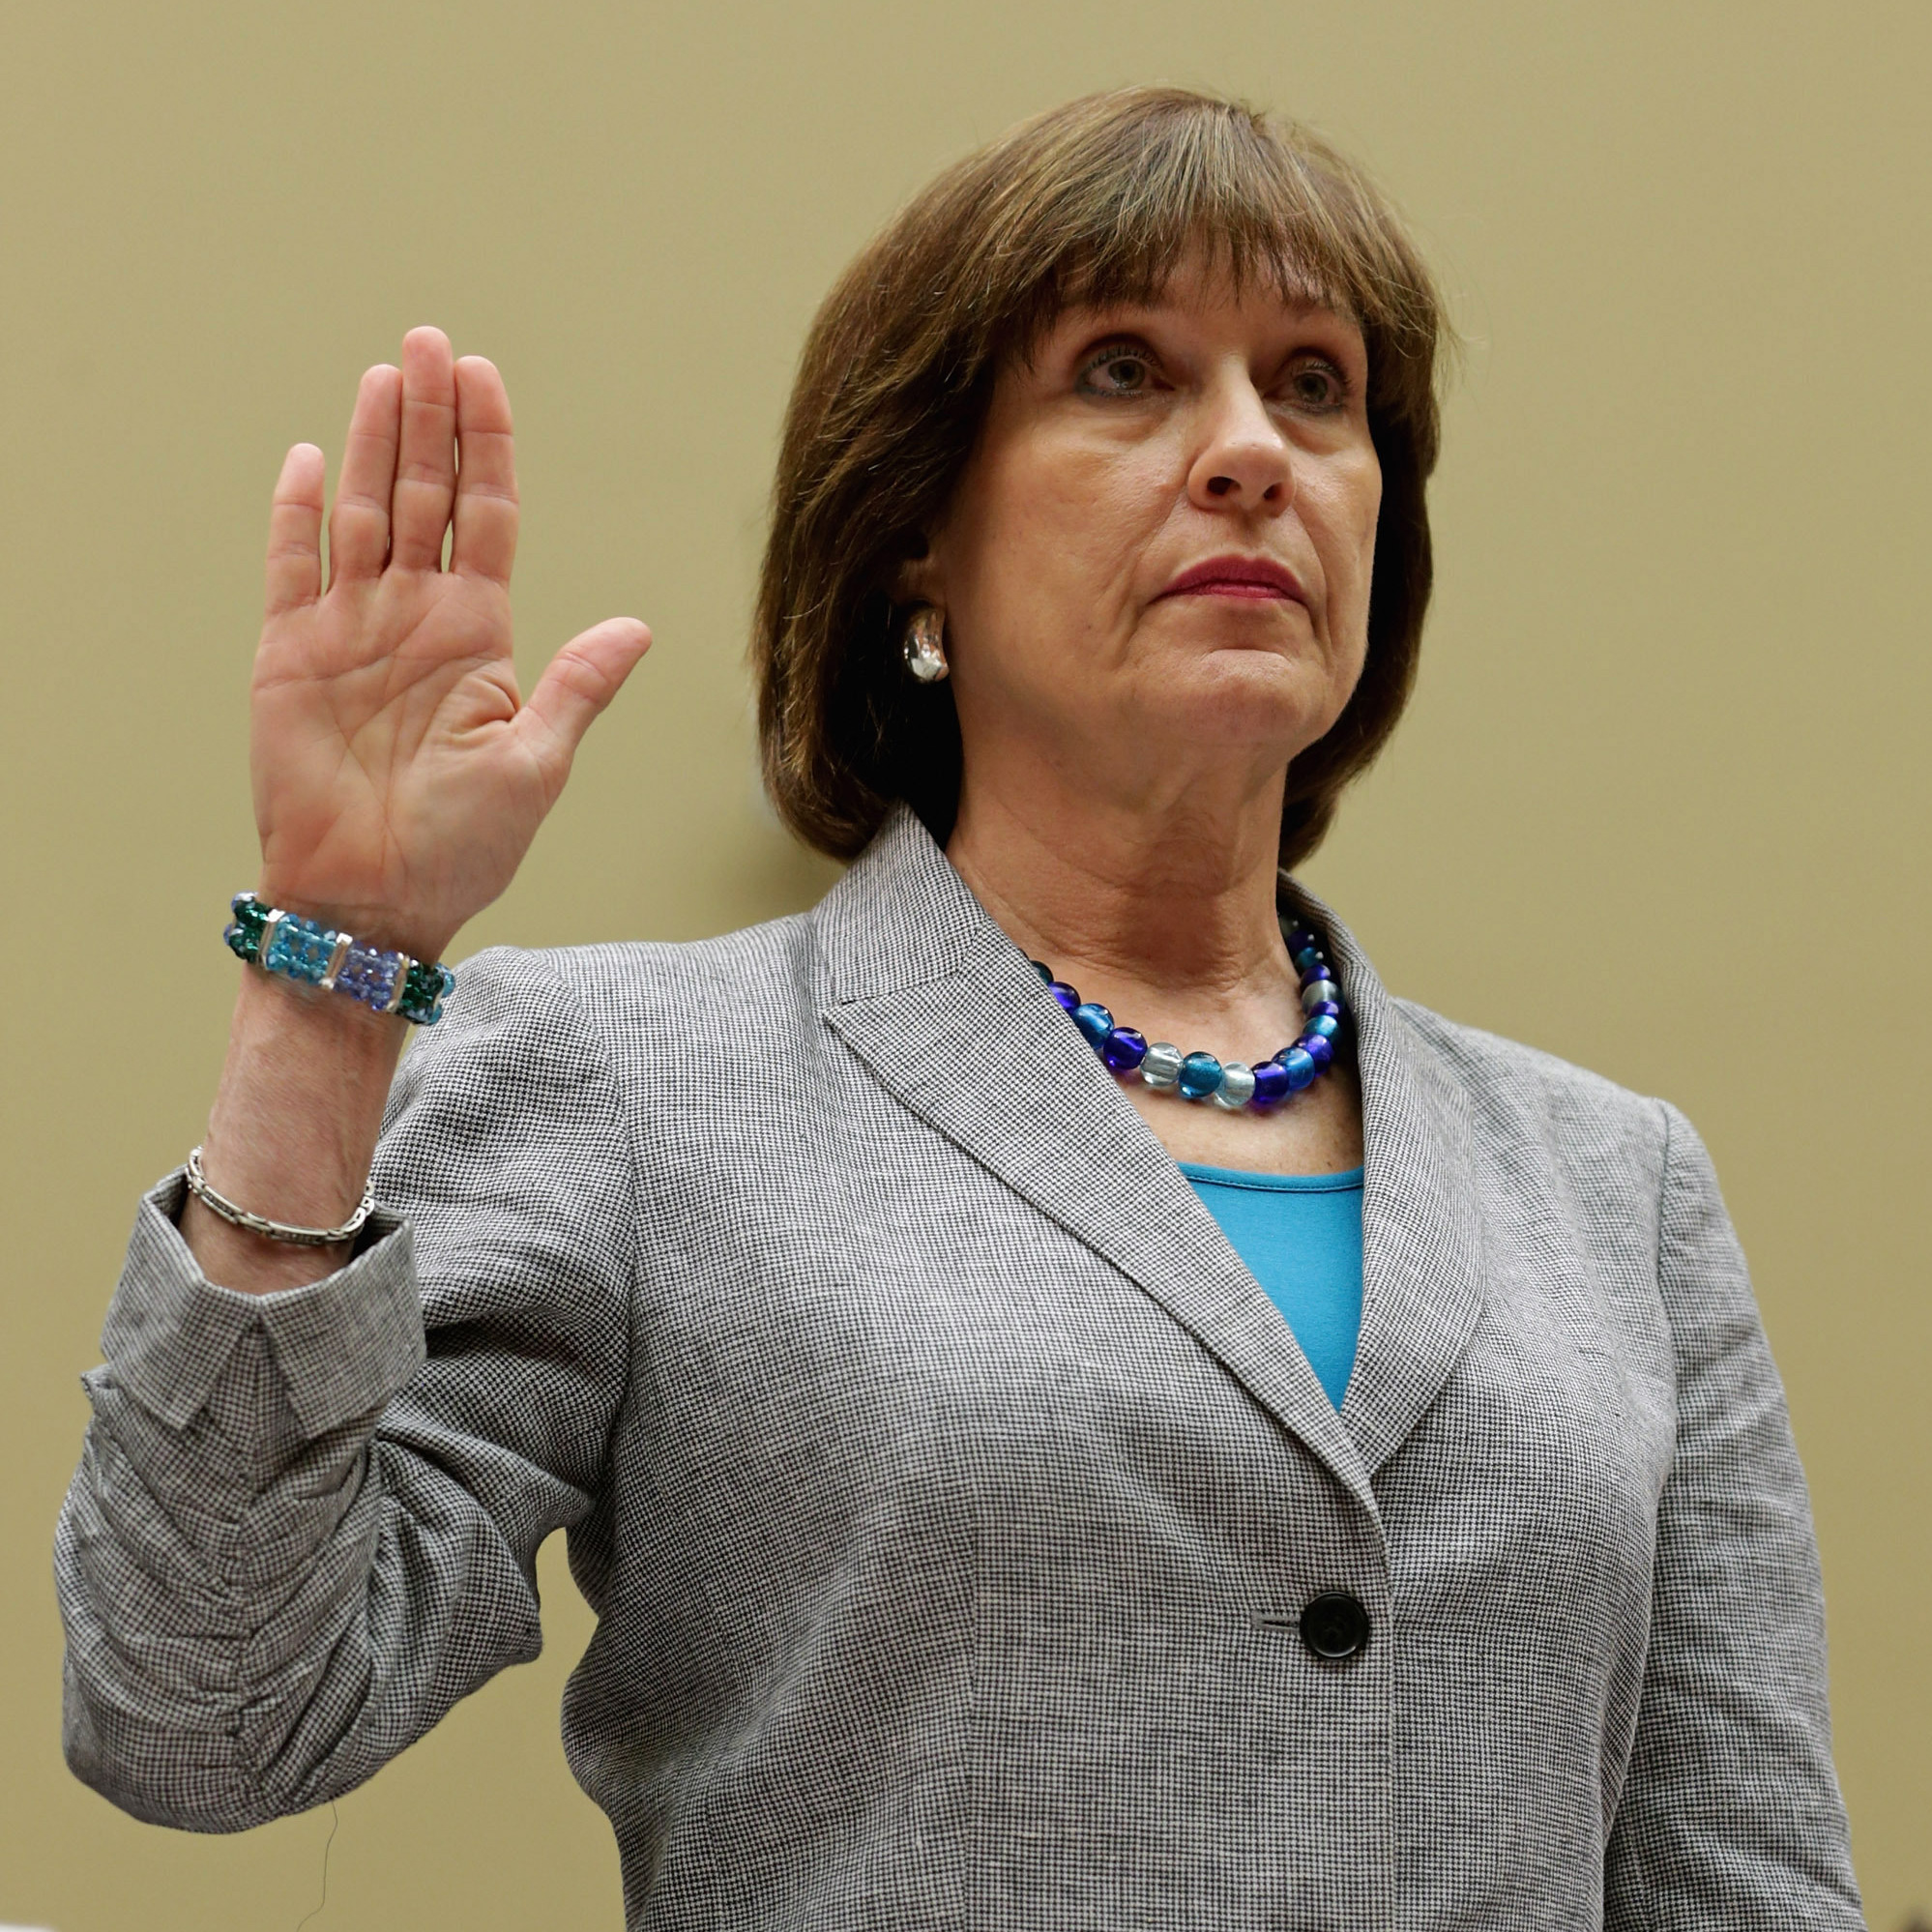 'I Have Not Done Anything Wrong,' Key IRS Official Says